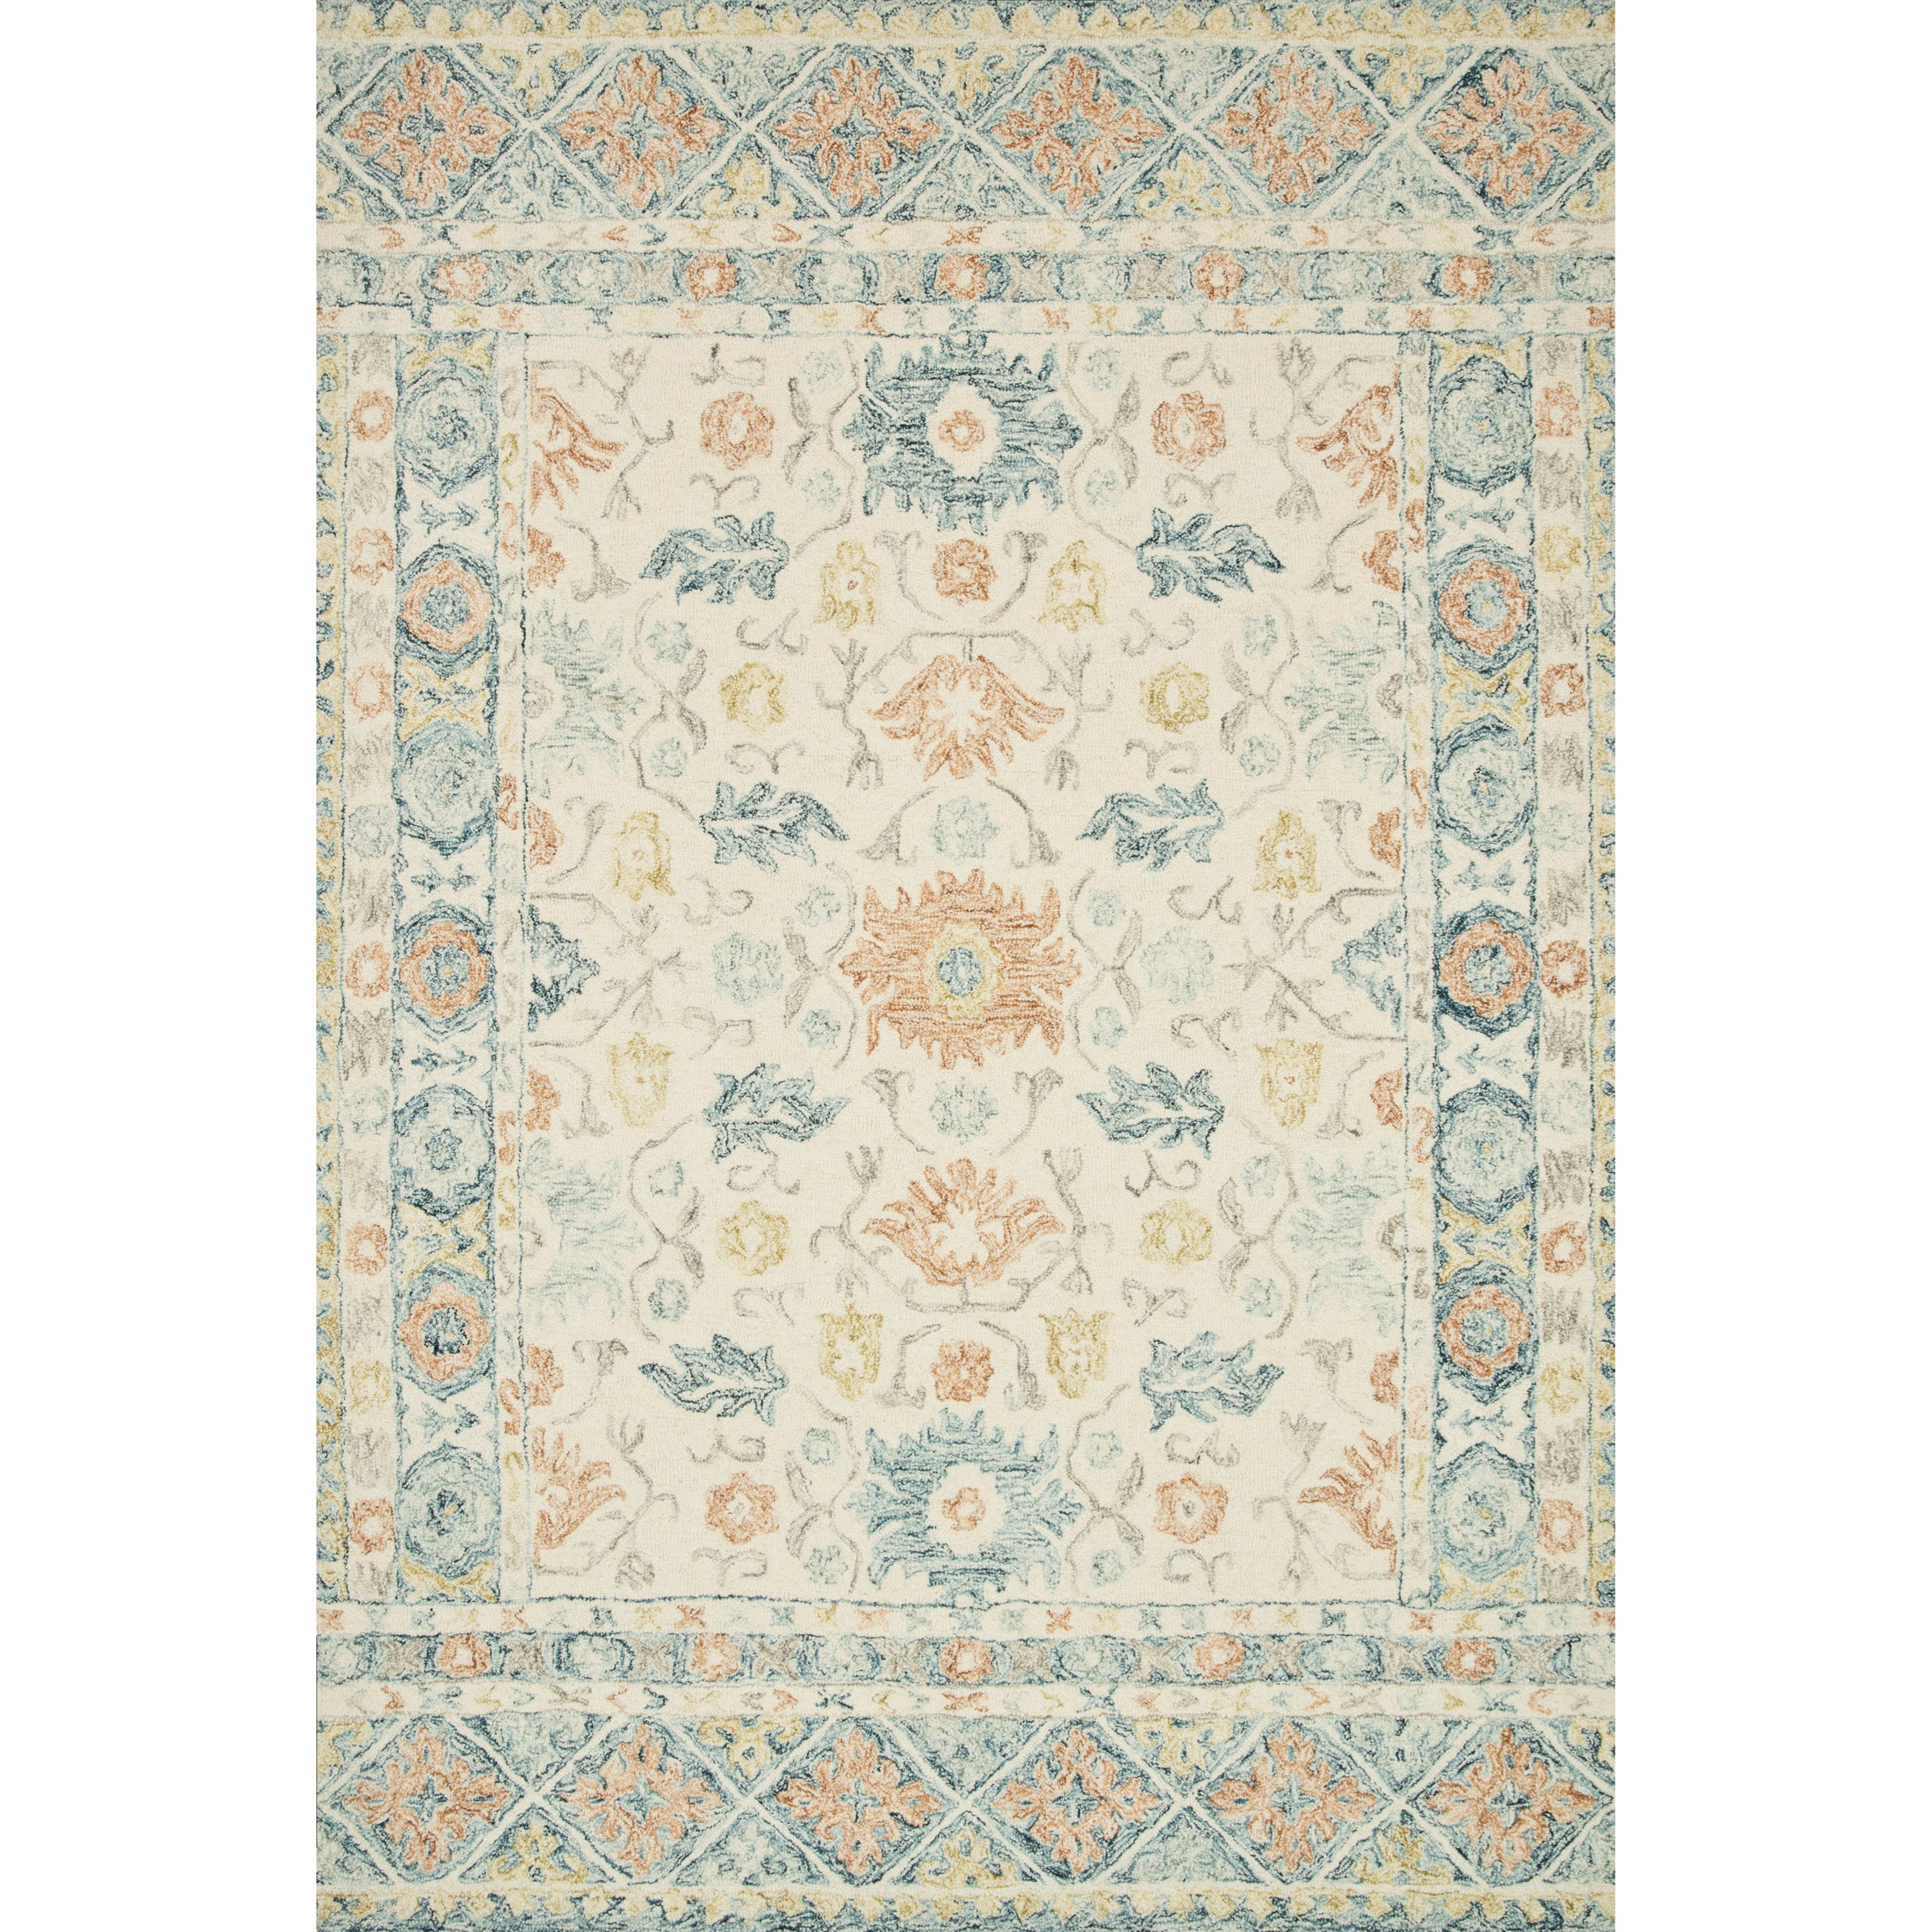 """Norabel 8'6"""" x 12' Ivory / Multi Rug by Loloi Rugs at Virginia Furniture Market"""